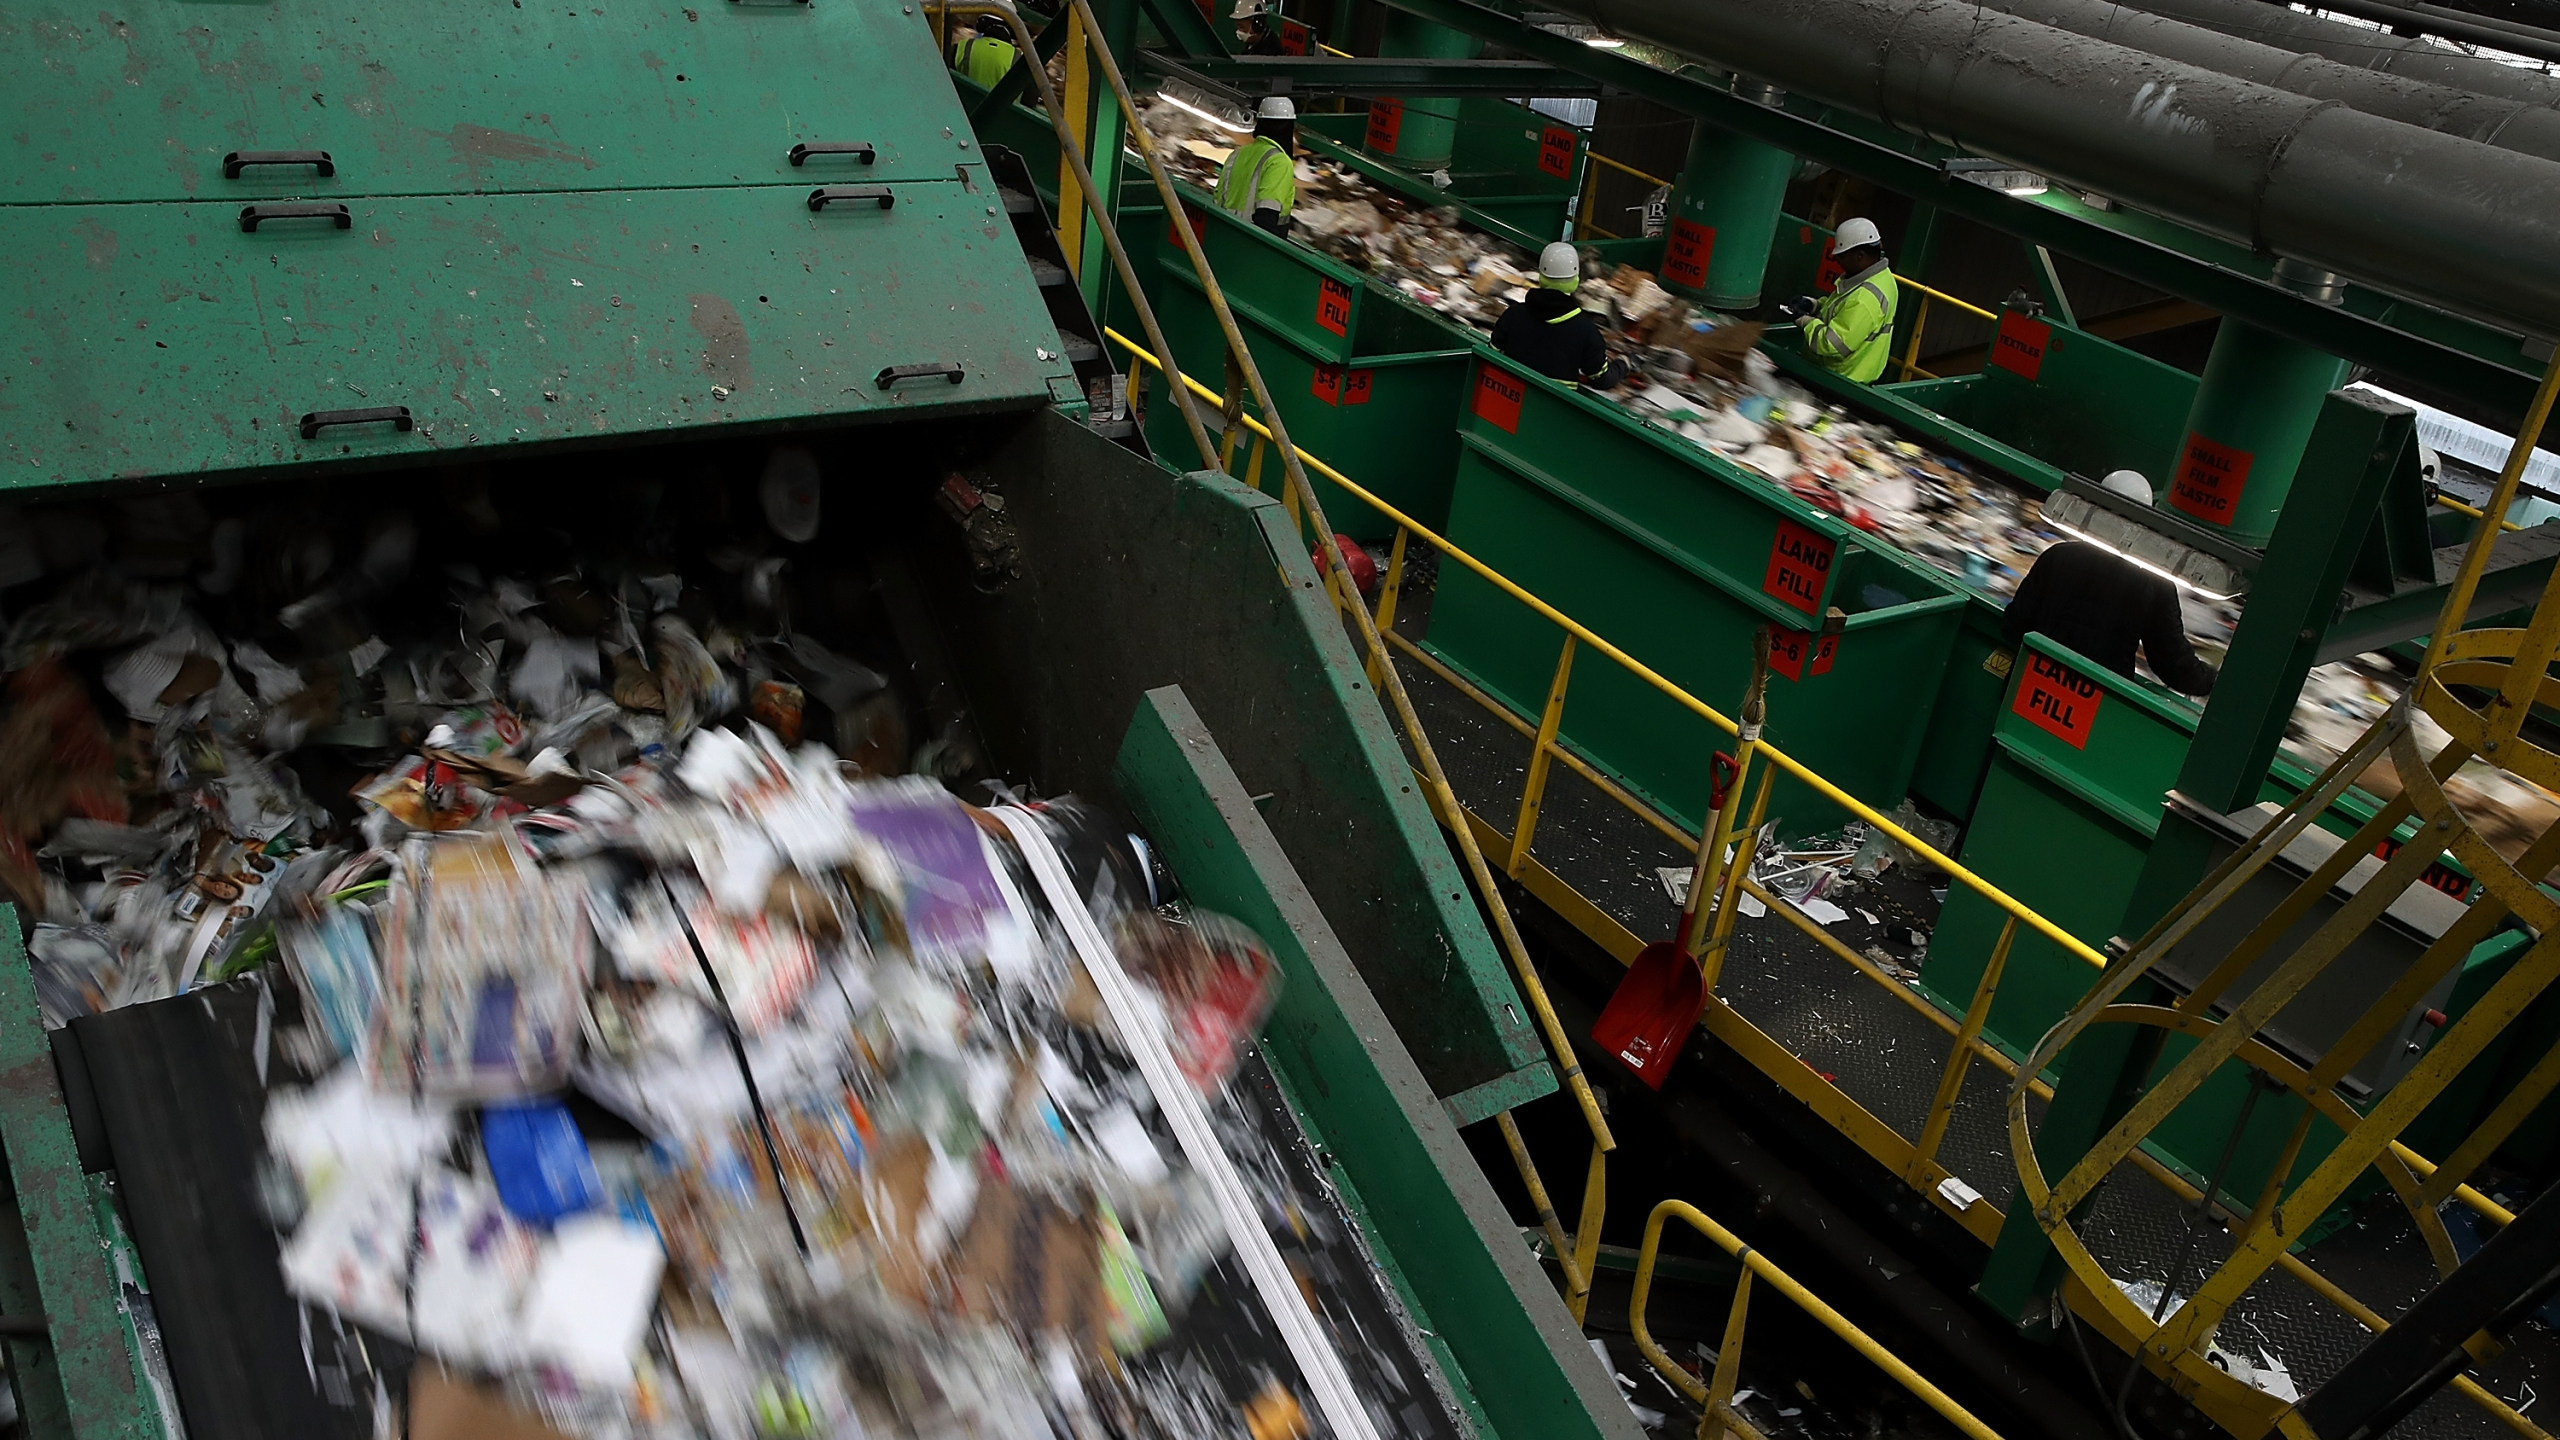 Workers sort through cardboard and mixed paper at Recology's Recylce Central on January 4, 2018 in San Francisco, California. (Justin Sullivan/Getty Images)